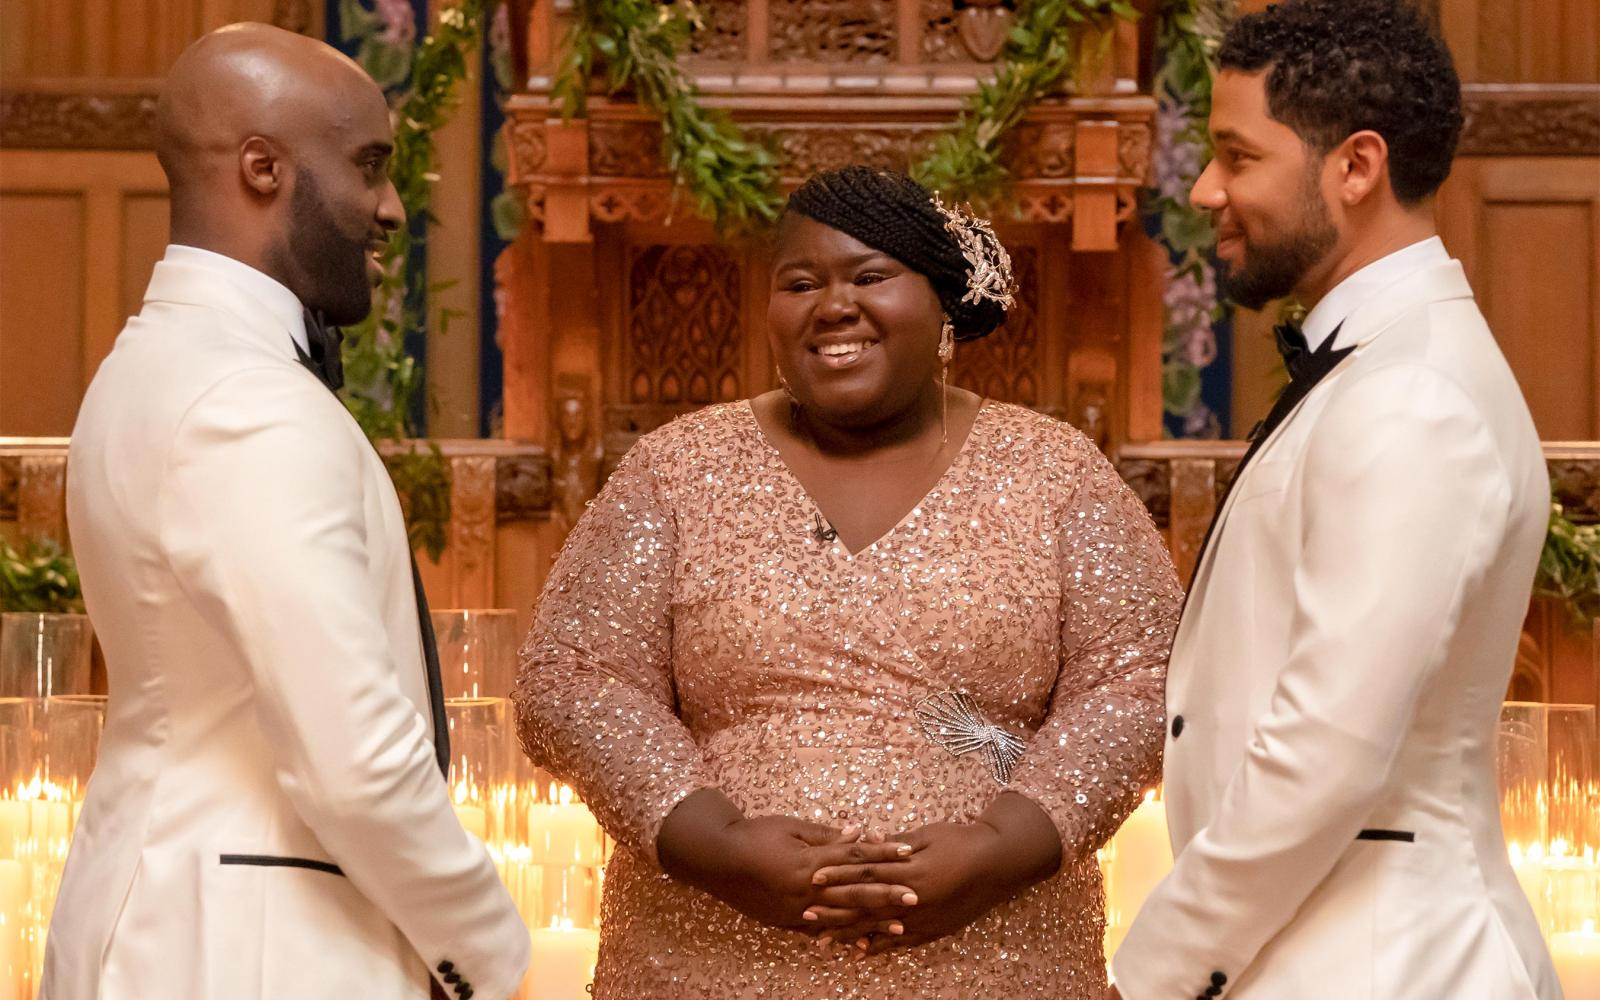 Empire Makes History Showing First Black Gay Couple